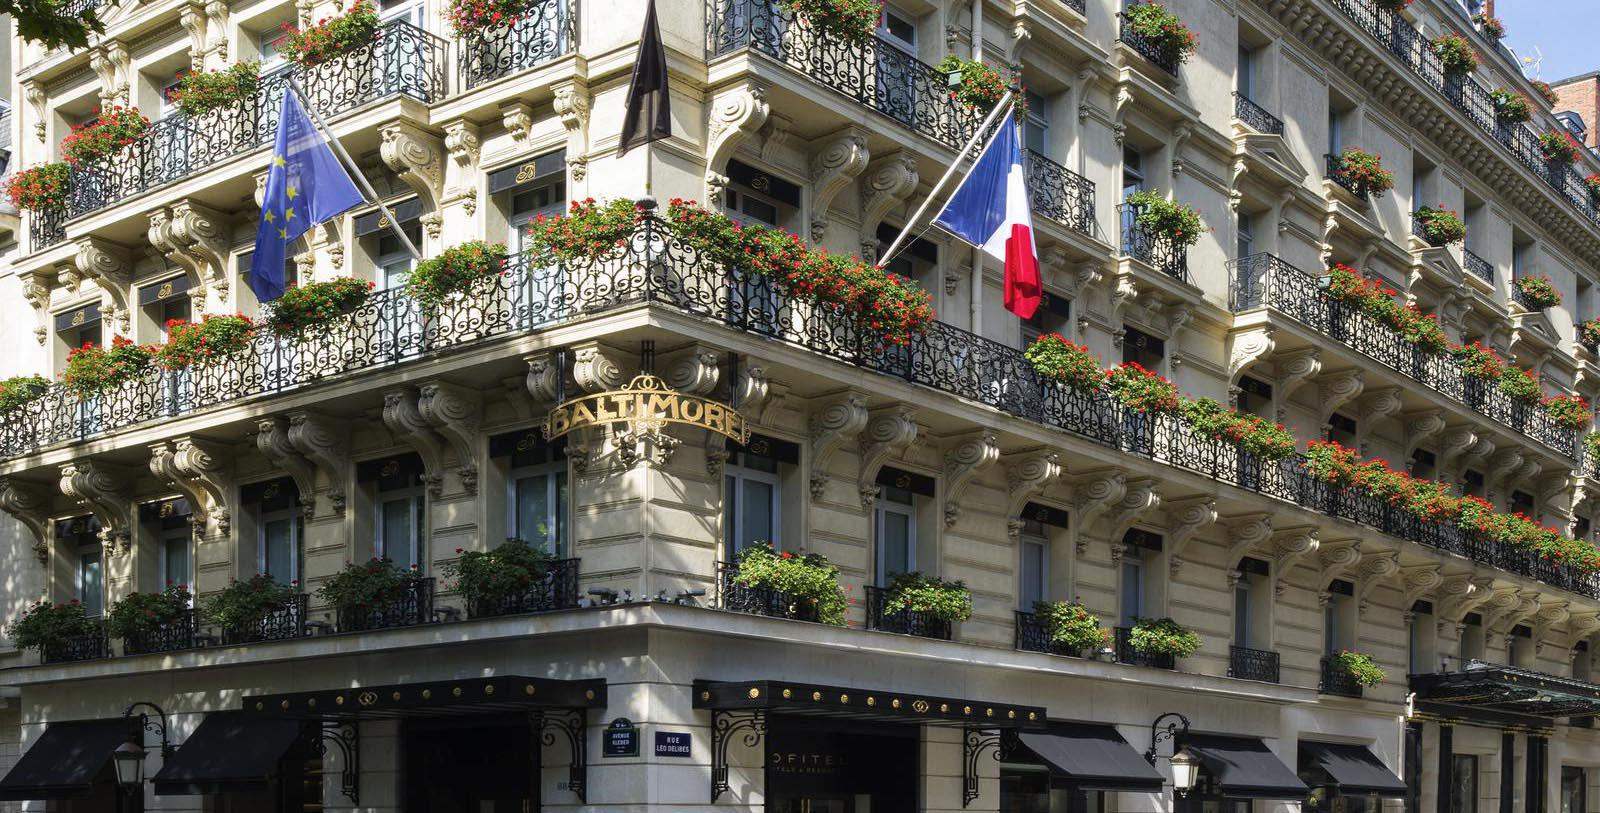 Image of Hotel Exterior Sofitel Paris Baltimore Tour Eiffel, 1892, Member of Historic Hotels Worldwide, in Paris, France, Special Offers, Discounted Rates, Families, Romantic Escape, Honeymoons, Anniversaries, Reunions